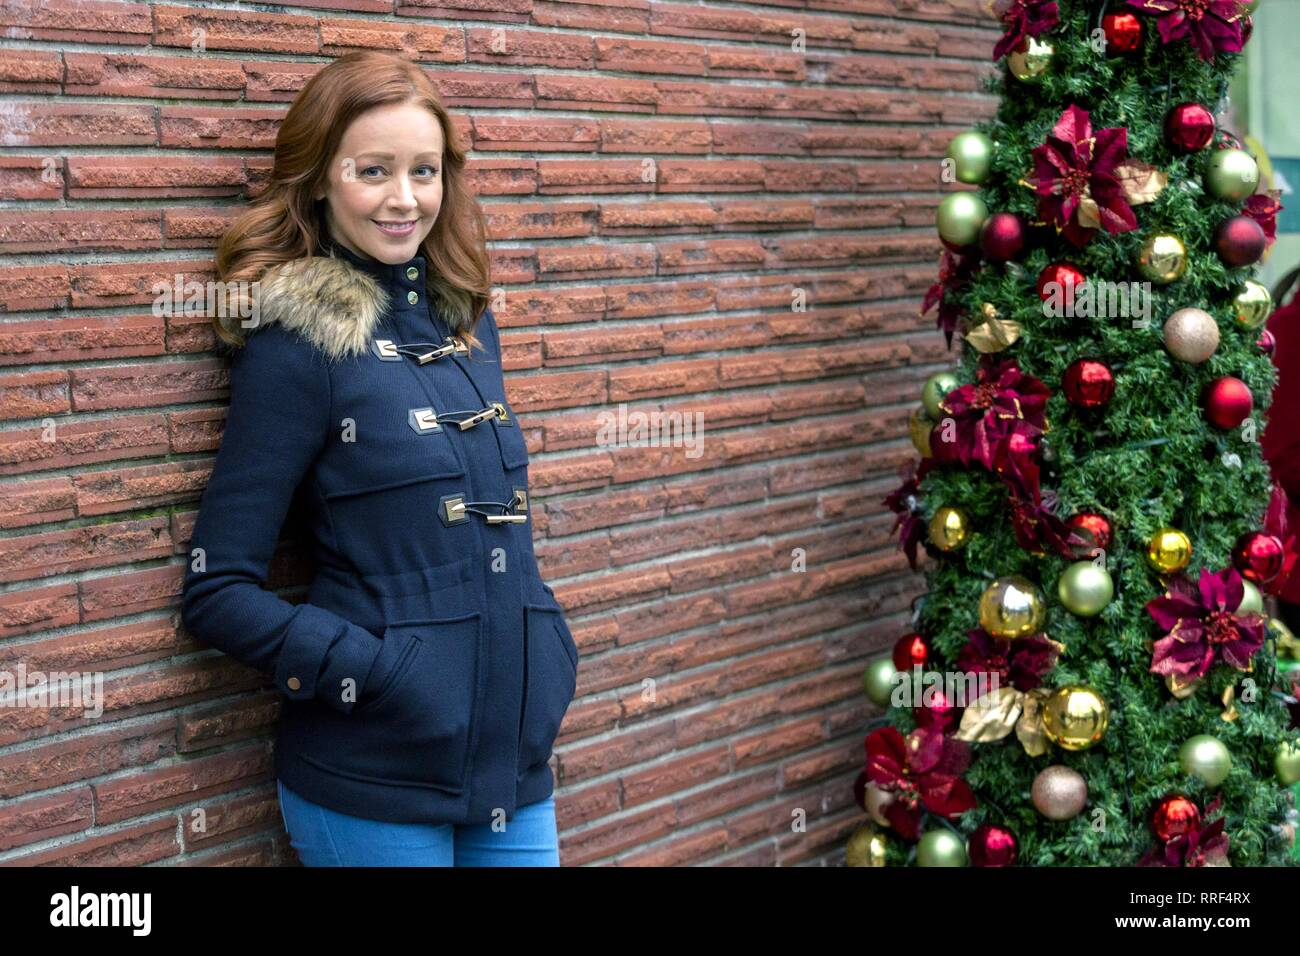 Rocky Mountain Christmas.Rocky Mountain Christmas Lindy Booth 2017 Stock Photo